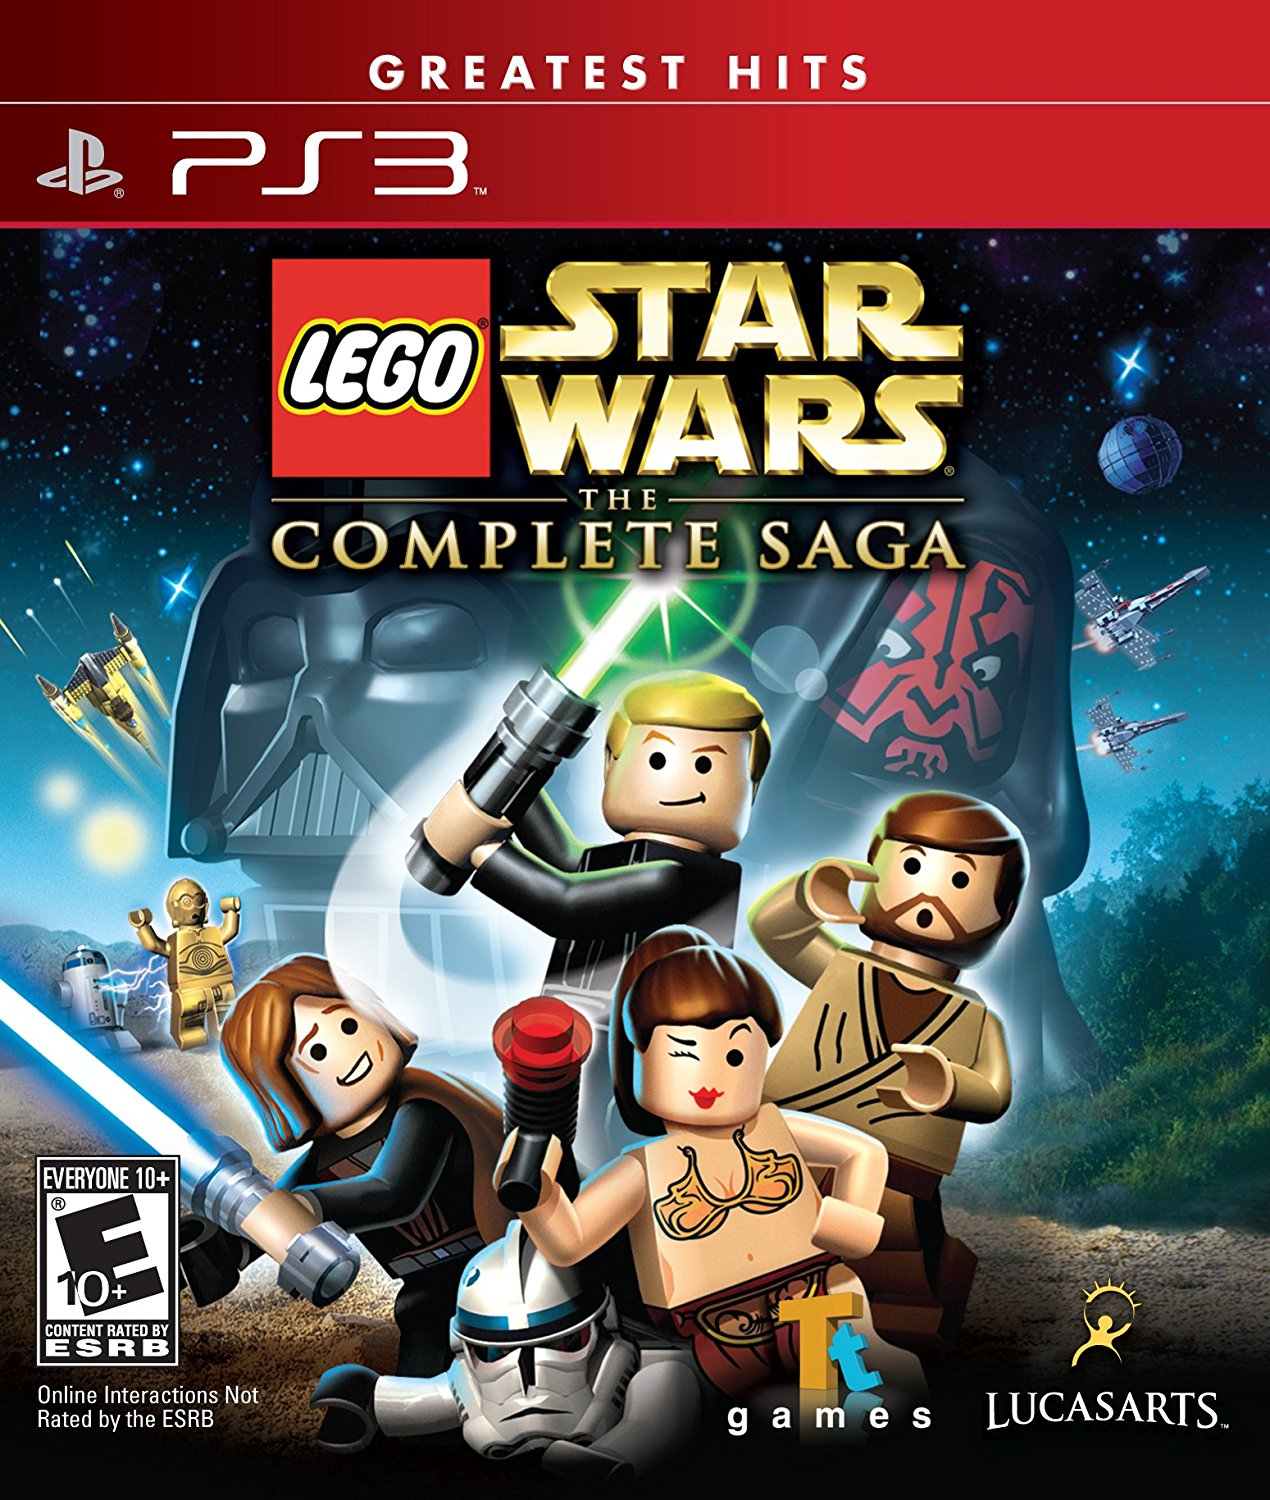 Lego Star Wars: The Complete Saga - Nintendo Wii: Artist Not Provided